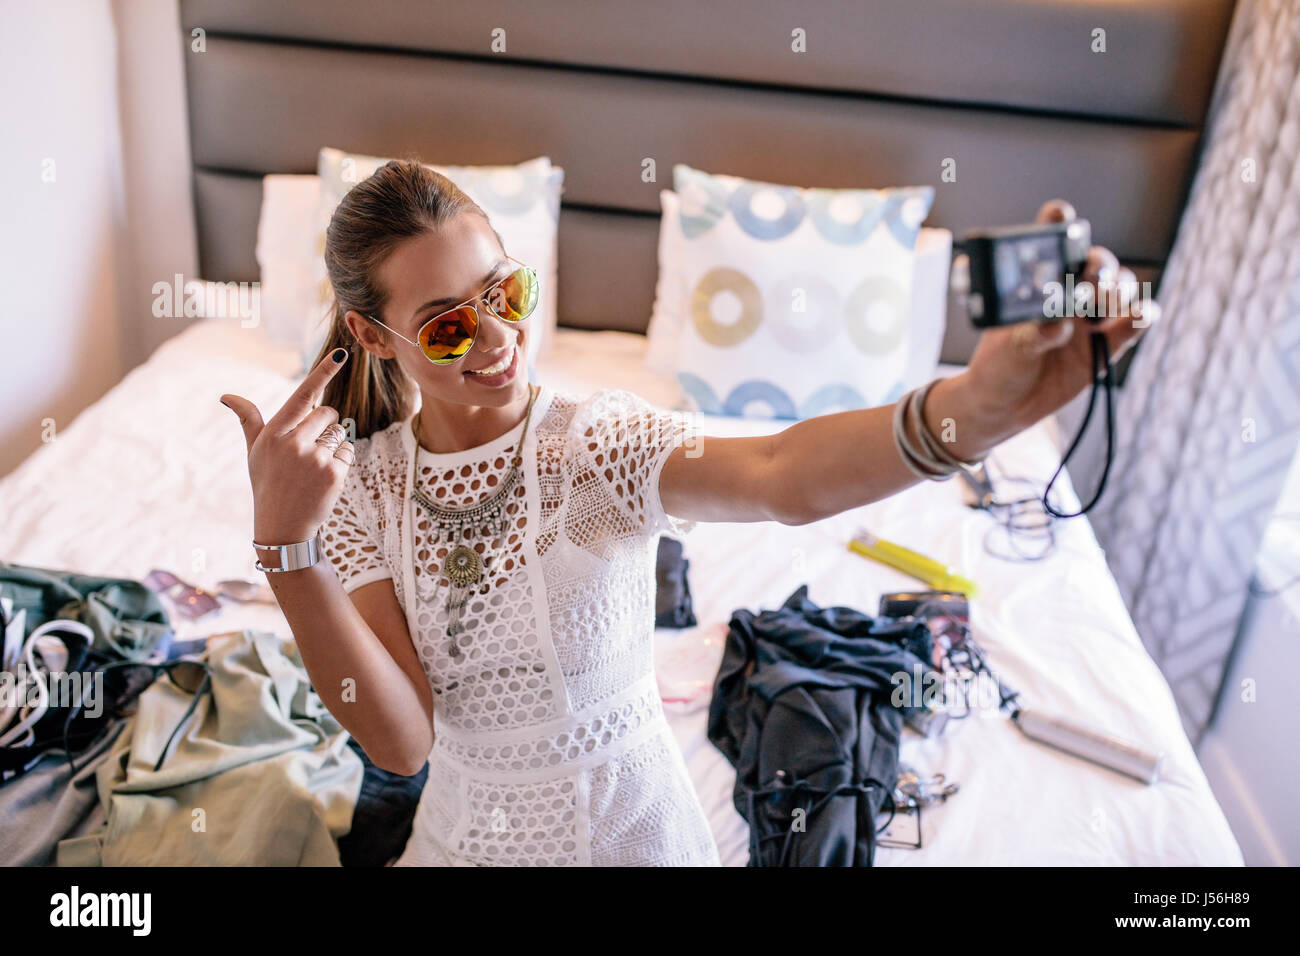 Female vlogger recording broadcast with digital camera. Woman taking a selfie video displaying fashion clothing - Stock Image